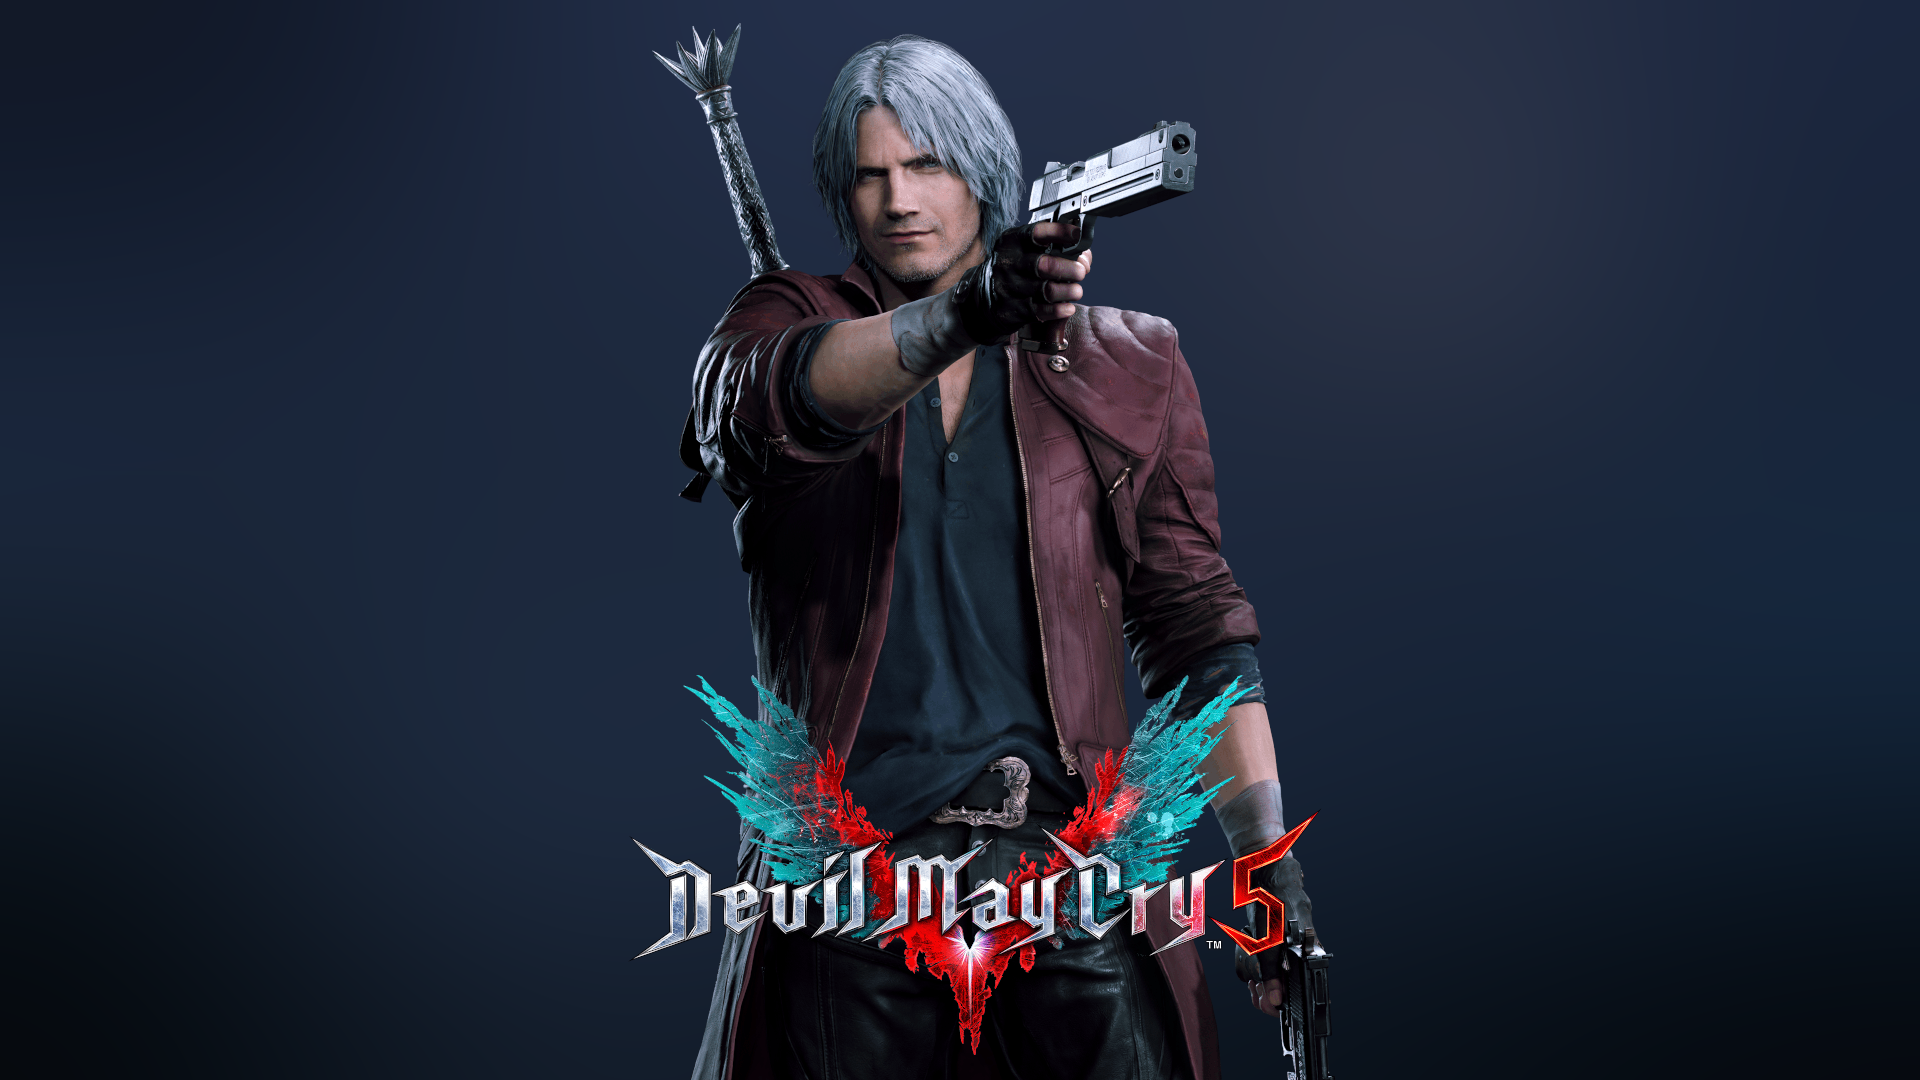 Devil May Cry 5 V Wallpaper Posted By Christopher Mercado